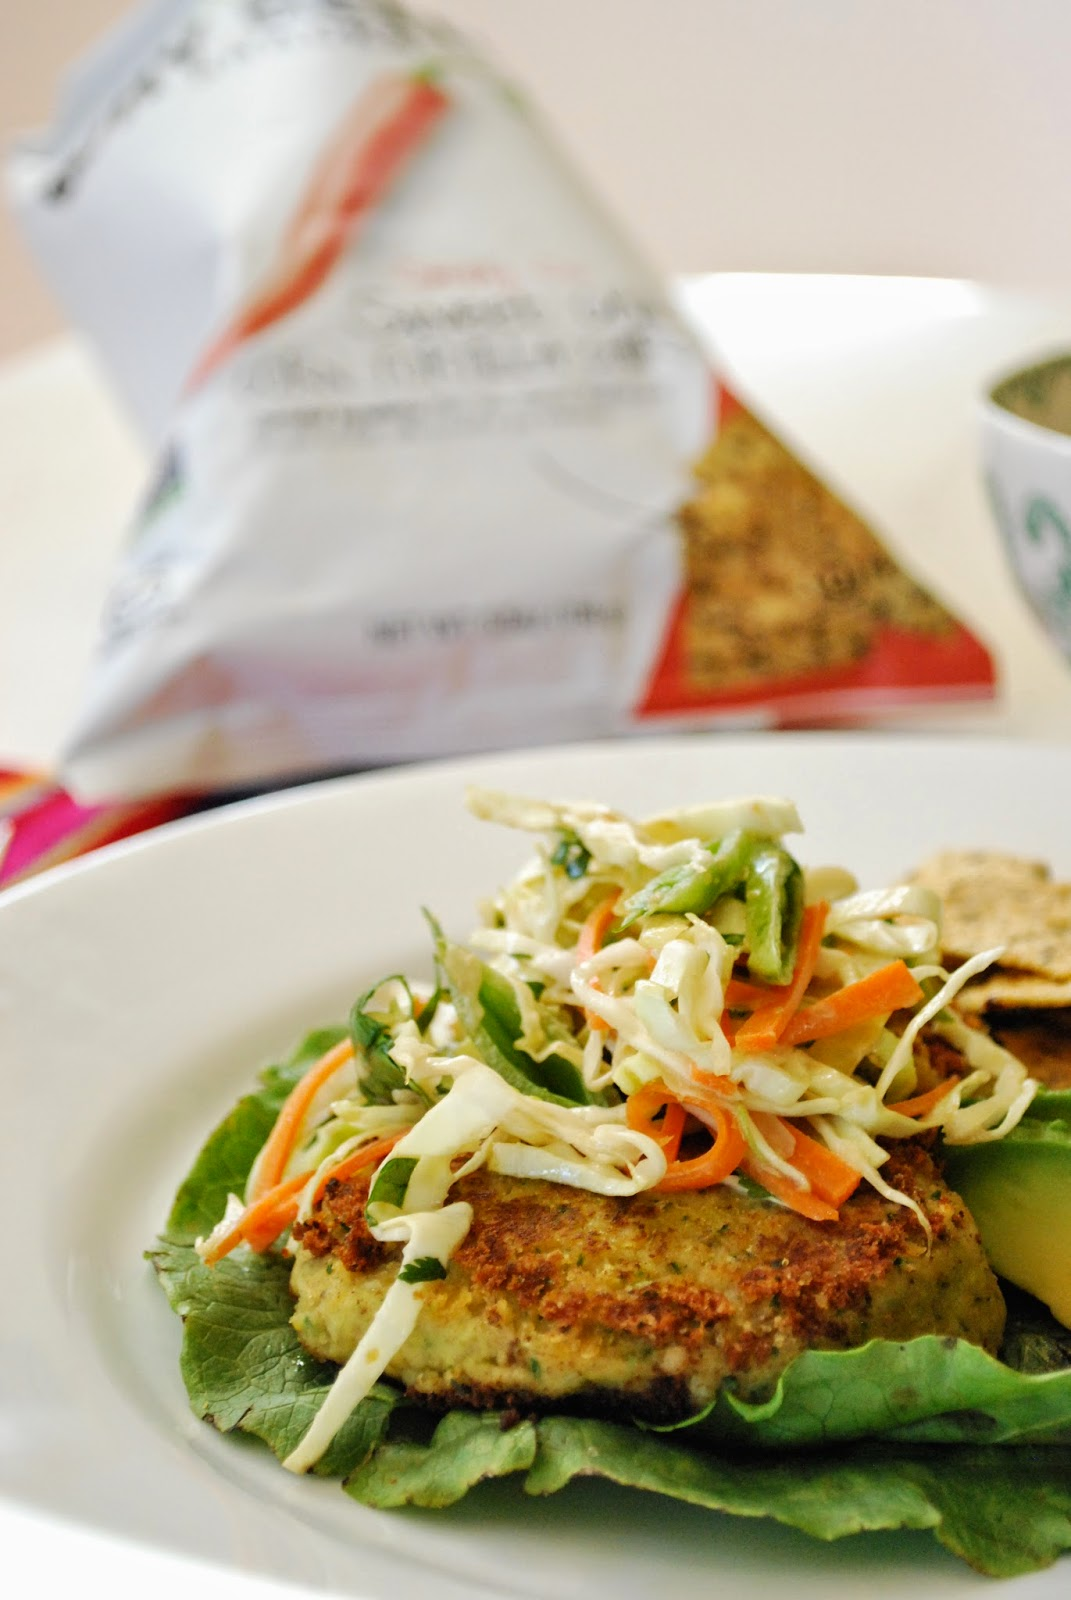 Thai Sweet Chili Chip Veggie Patties with Ginger Slaw: vegan, gluten-free, dairy-free